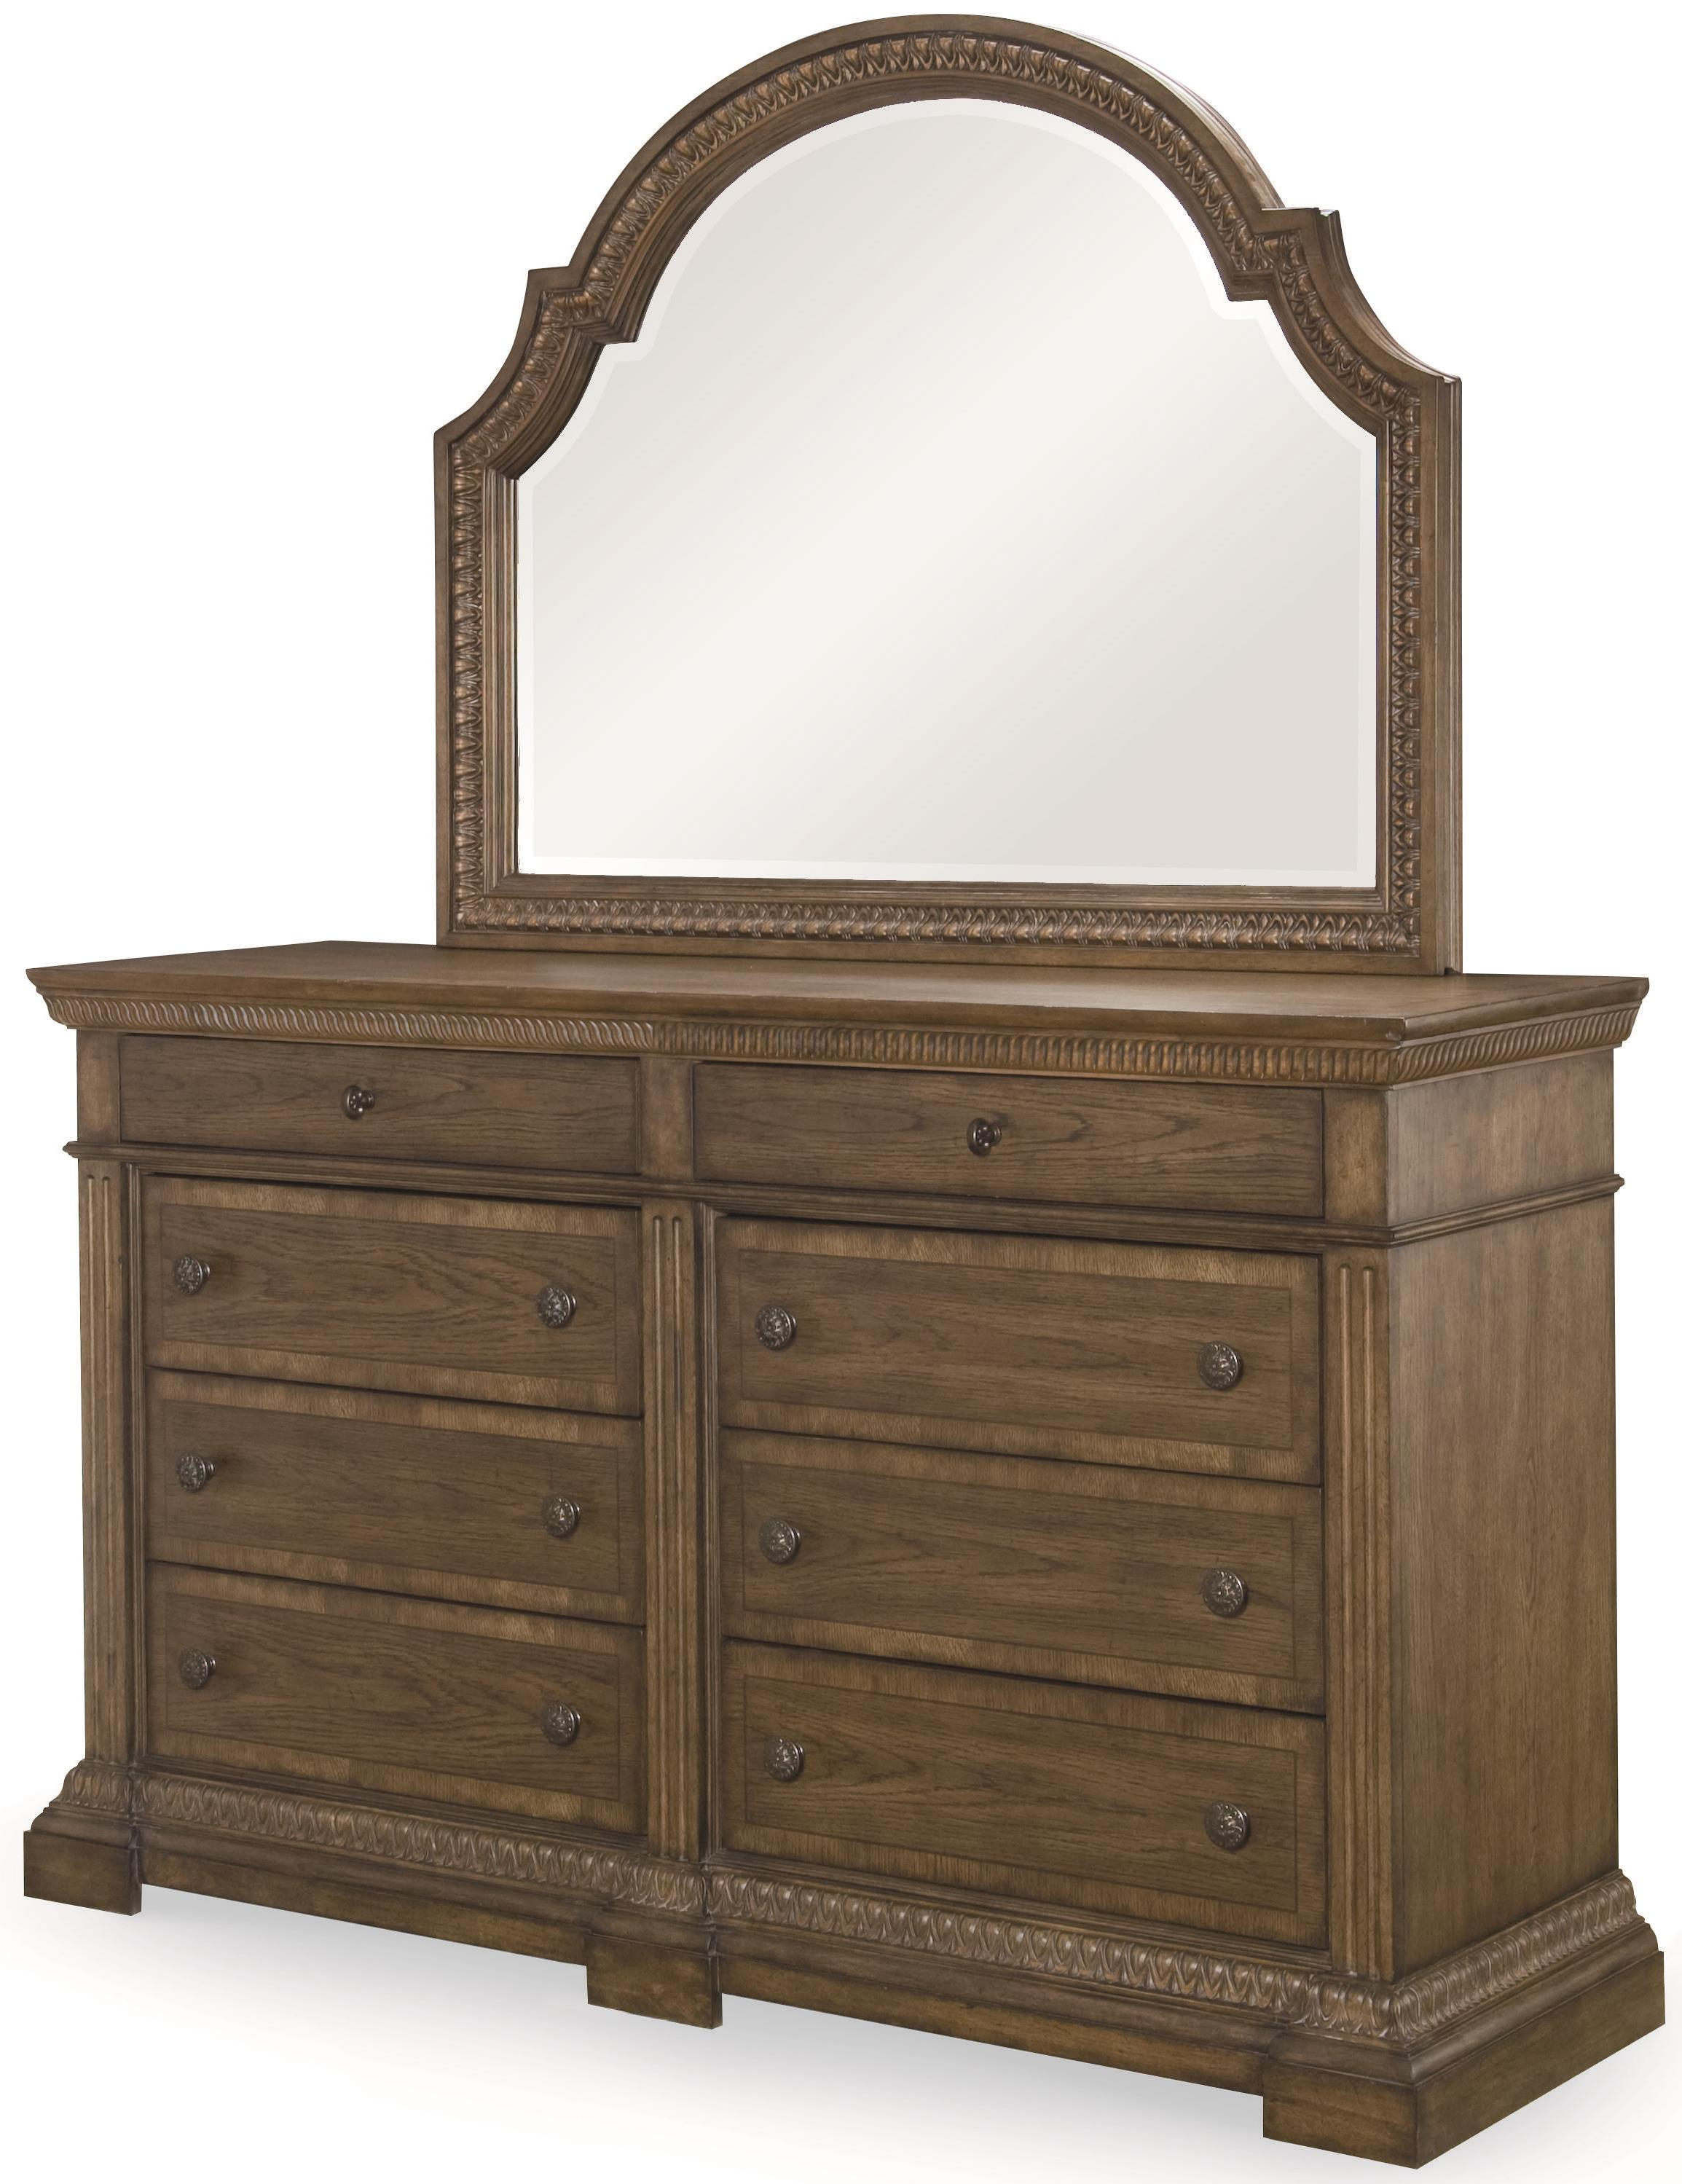 Legacy Classic Renaissance Dresser and Mirror Combo - Item Number: 5500-1200+0200